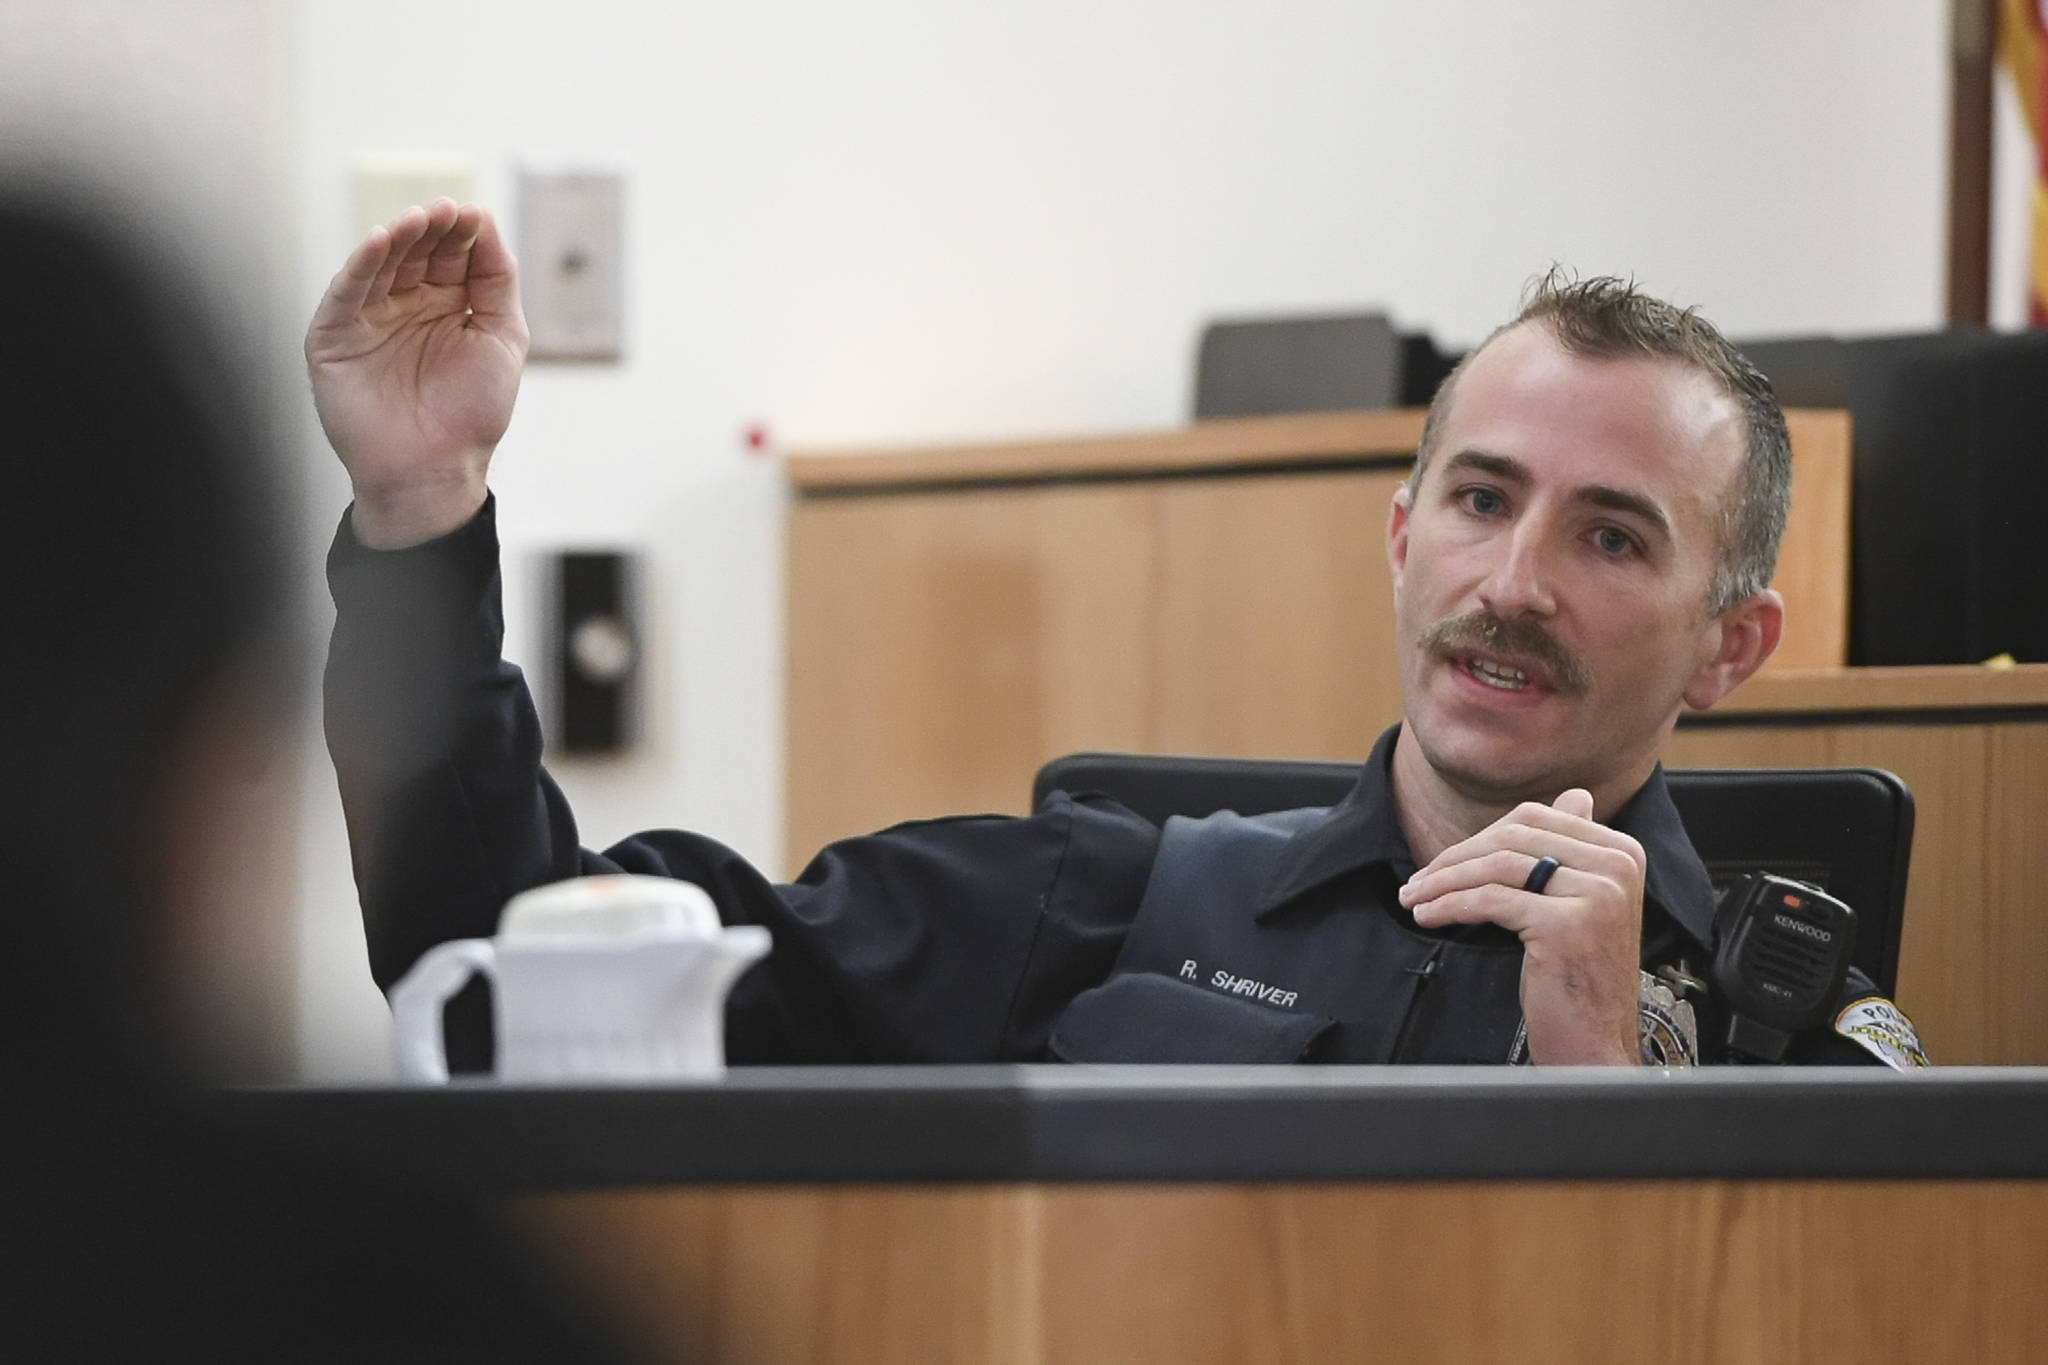 Juneau Police Department Officer Ronald Shriver answers questions on the witness stand from defense attorney Natasha Norris in Juneau Superior Court on Tuesday, Sept. 24, 2019, during Graham's trial. Graham is facing two counts of first-degree murder for the November 2015 shooting deaths of 36-year-old Robert H. Meireis and 34-year-old Elizabeth K. Tonsmeire. Shriver was a Department of Corrections officer working at Lemon Creek Correctional Center when Graham was housed there in 2016. (Michael Penn | Juneau Empire)